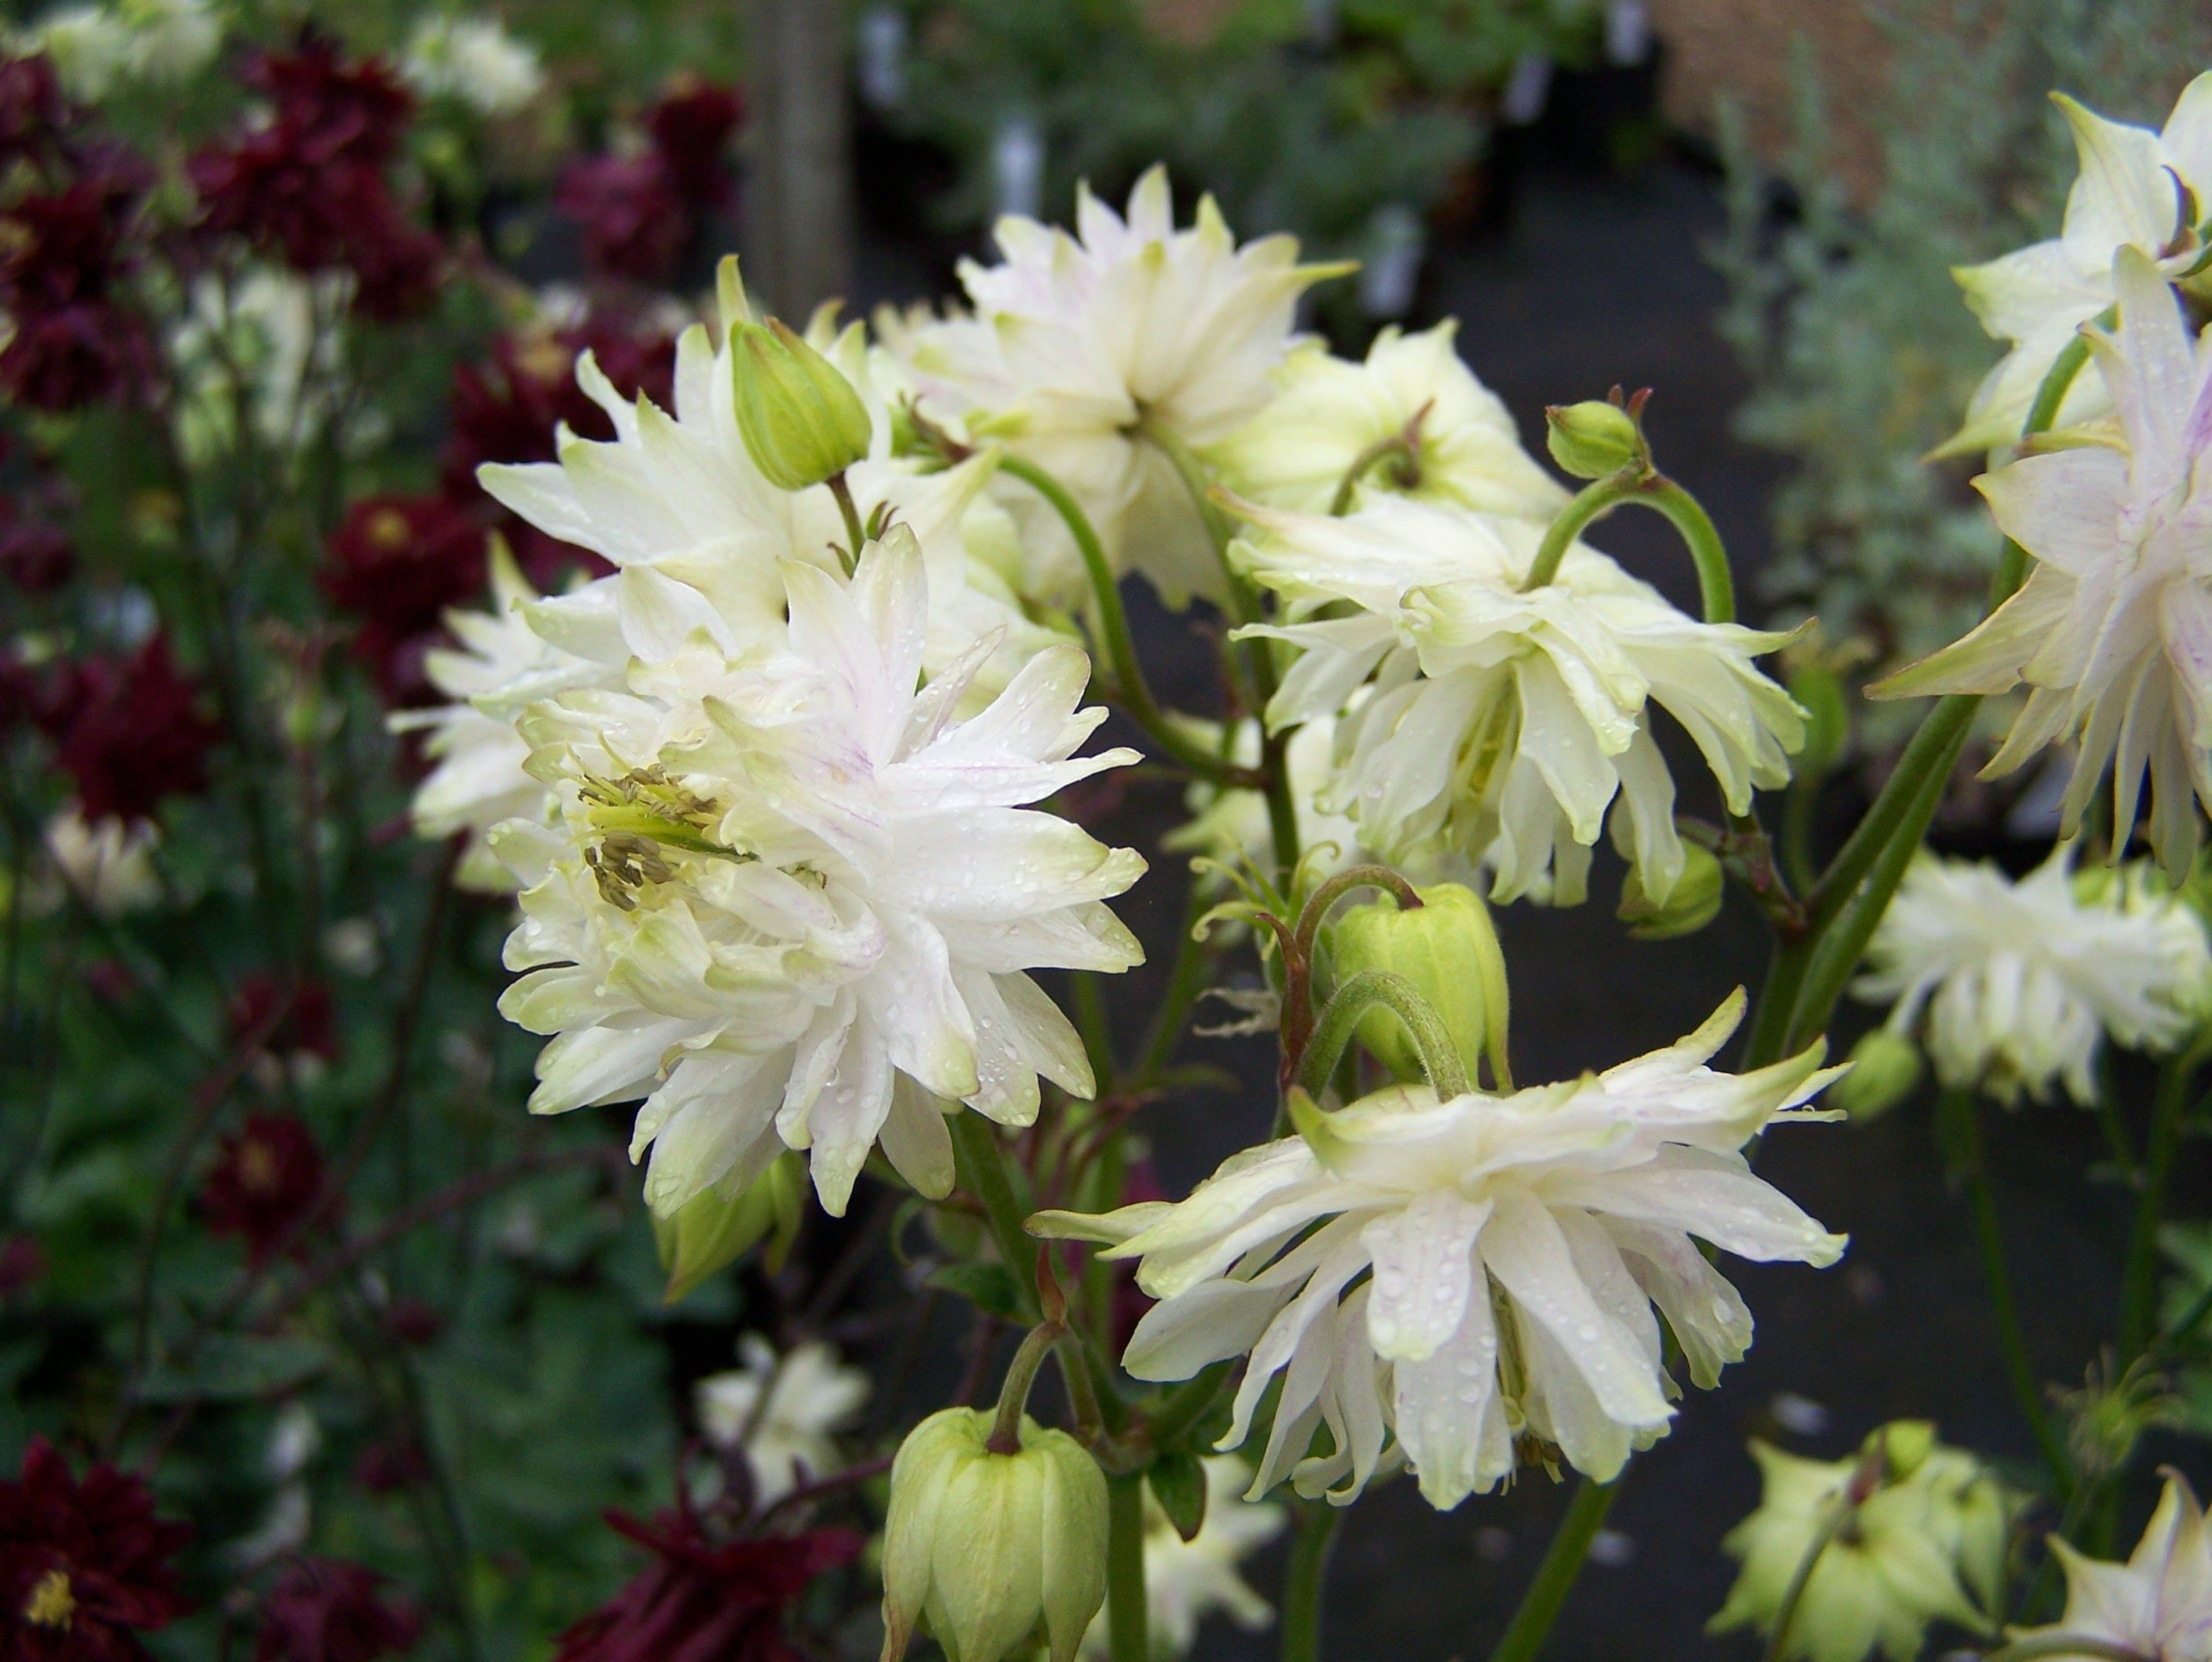 Aquilegia vulgaris white barlow our garden pinterest white aquilegia vulgaris white barlow white flowers dhlflorist Image collections